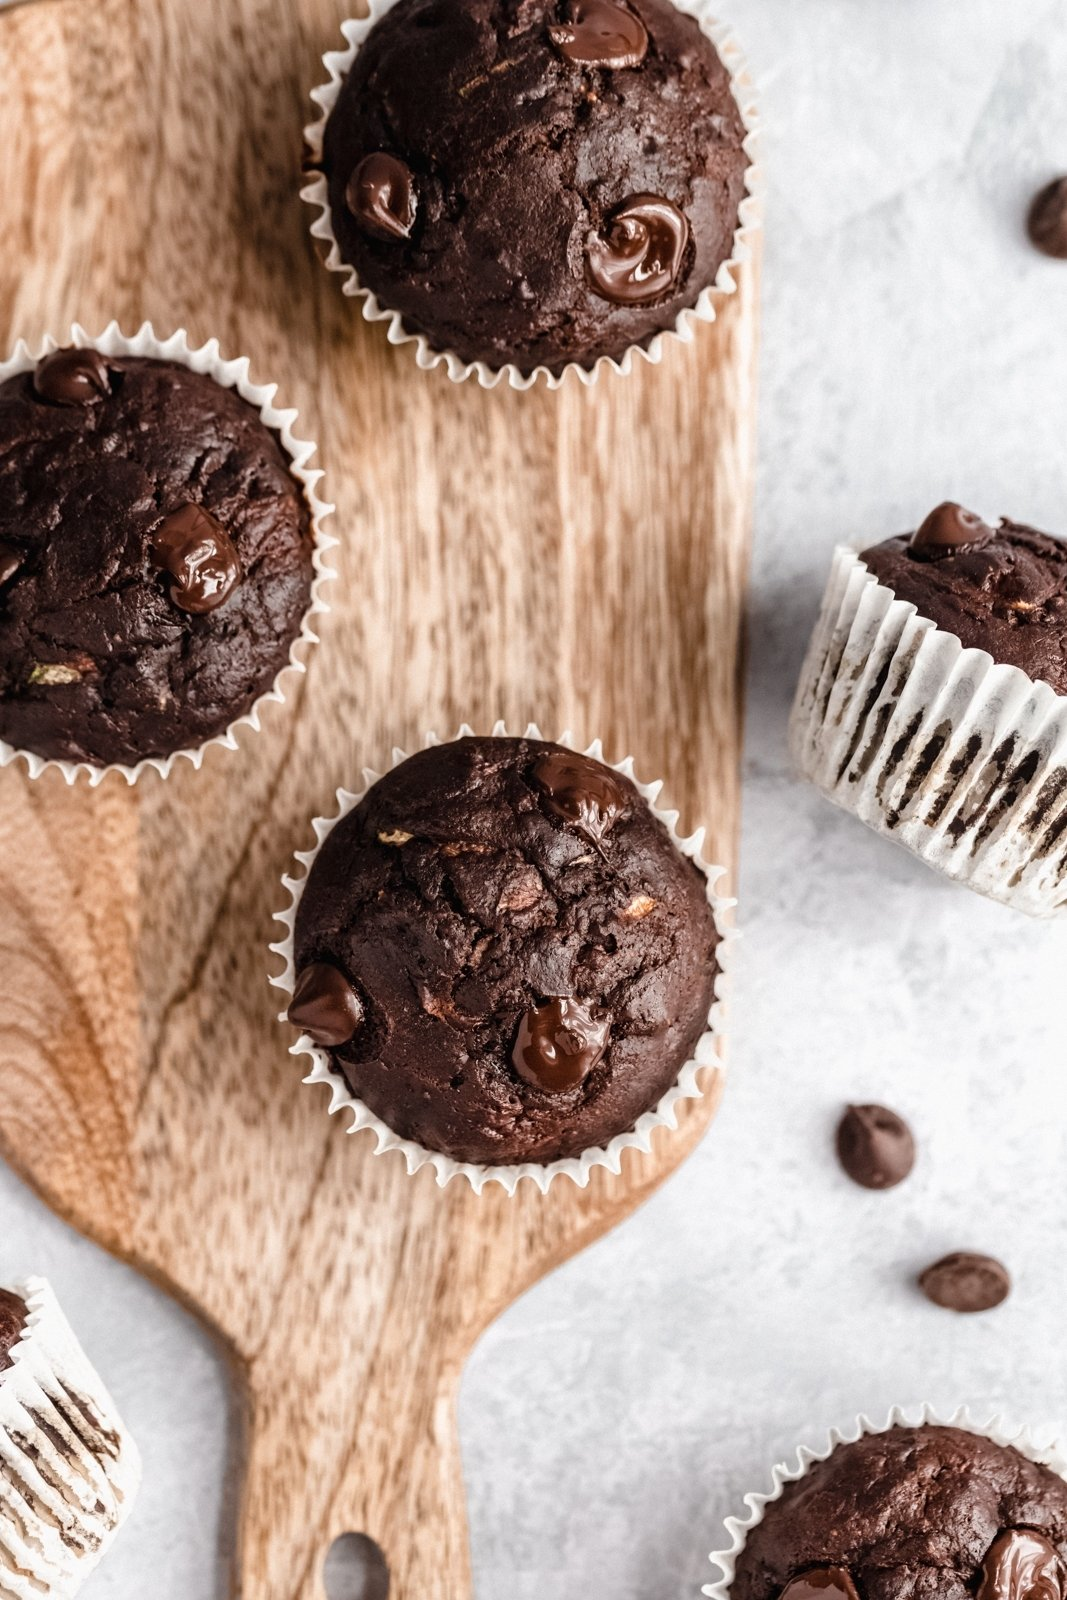 healthy chocolate zucchini muffins on a wooden board